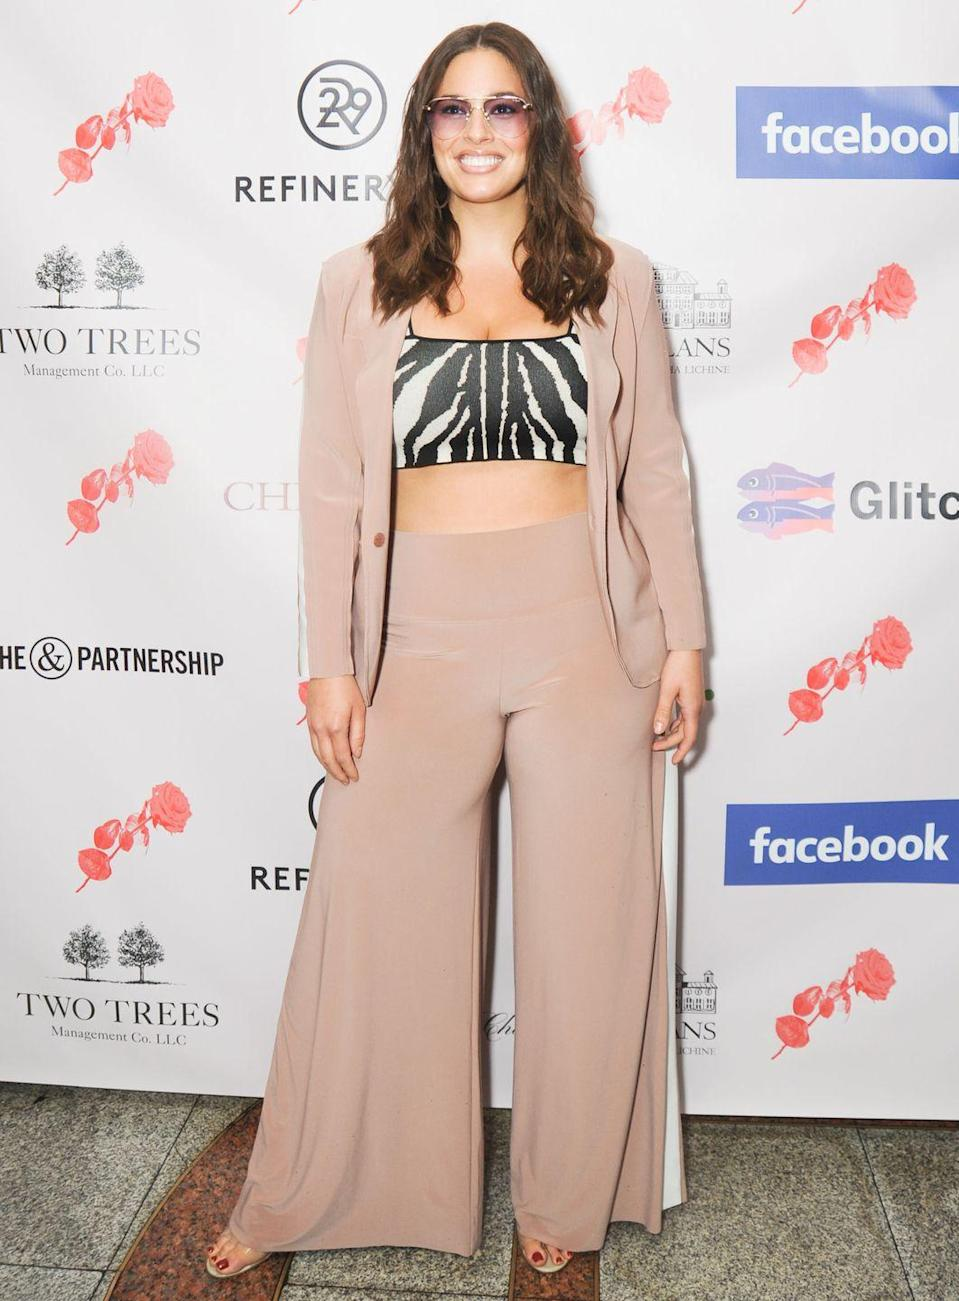 <p>At an event in New York: Ashley Graham wore the most perfect nude suit - complete with zebra crop top - to an event in New York in May. LOVE her sunglasses, too.</p>